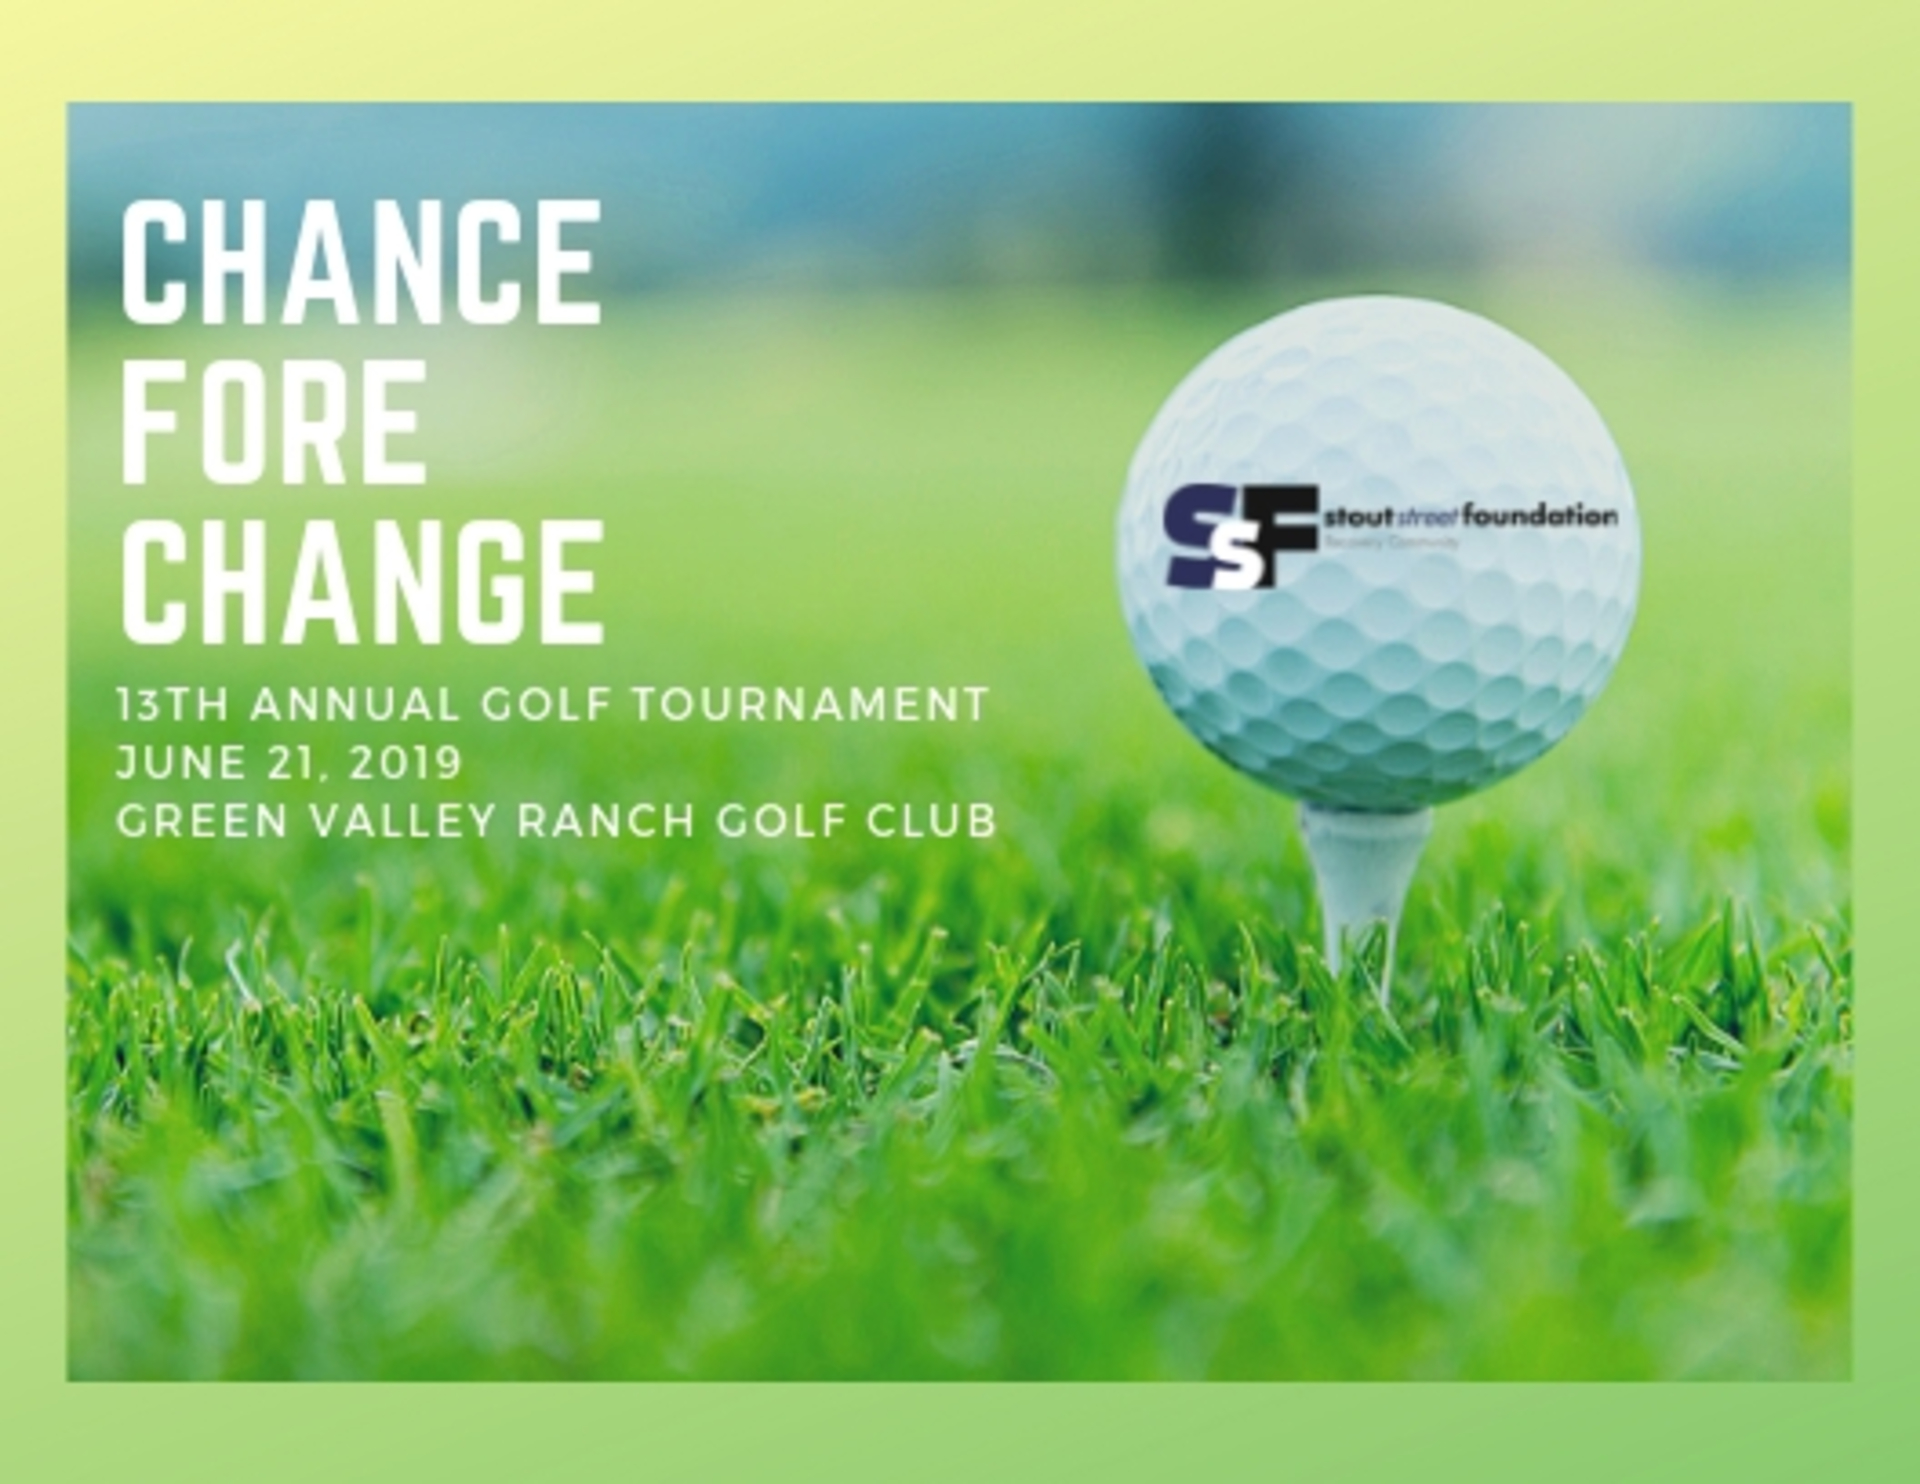 Stout Street Foundation\'s 13th Annual Golf Tournament: A Chance Fore Change